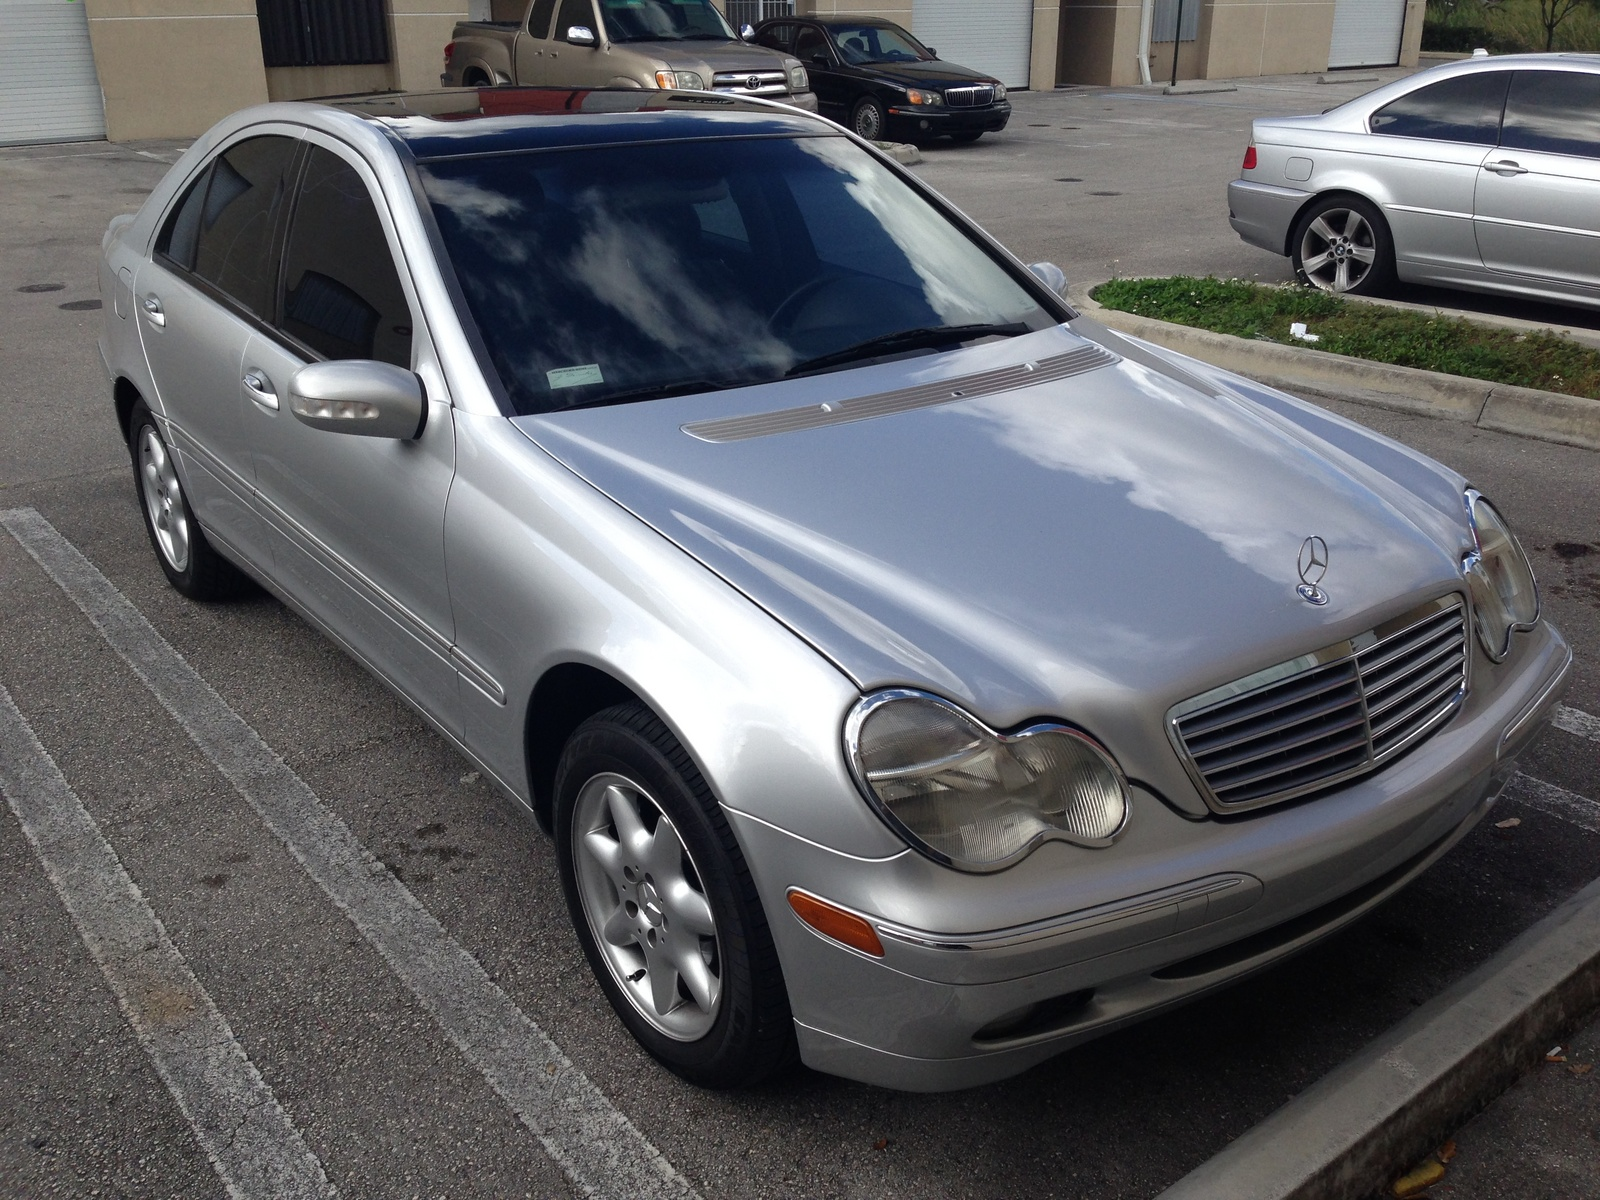 Mercedes Benz C Base Wagon Door L Lgw in addition Mercedes Benz C Amg Dr Supercharged Sedan Pic X additionally Mercedes Benz C Class Sedan C Amg Fq Oem as well D Head Bolt Torque Specs Rentawreck in addition Pic. on 2002 mercedes benz c320 specs